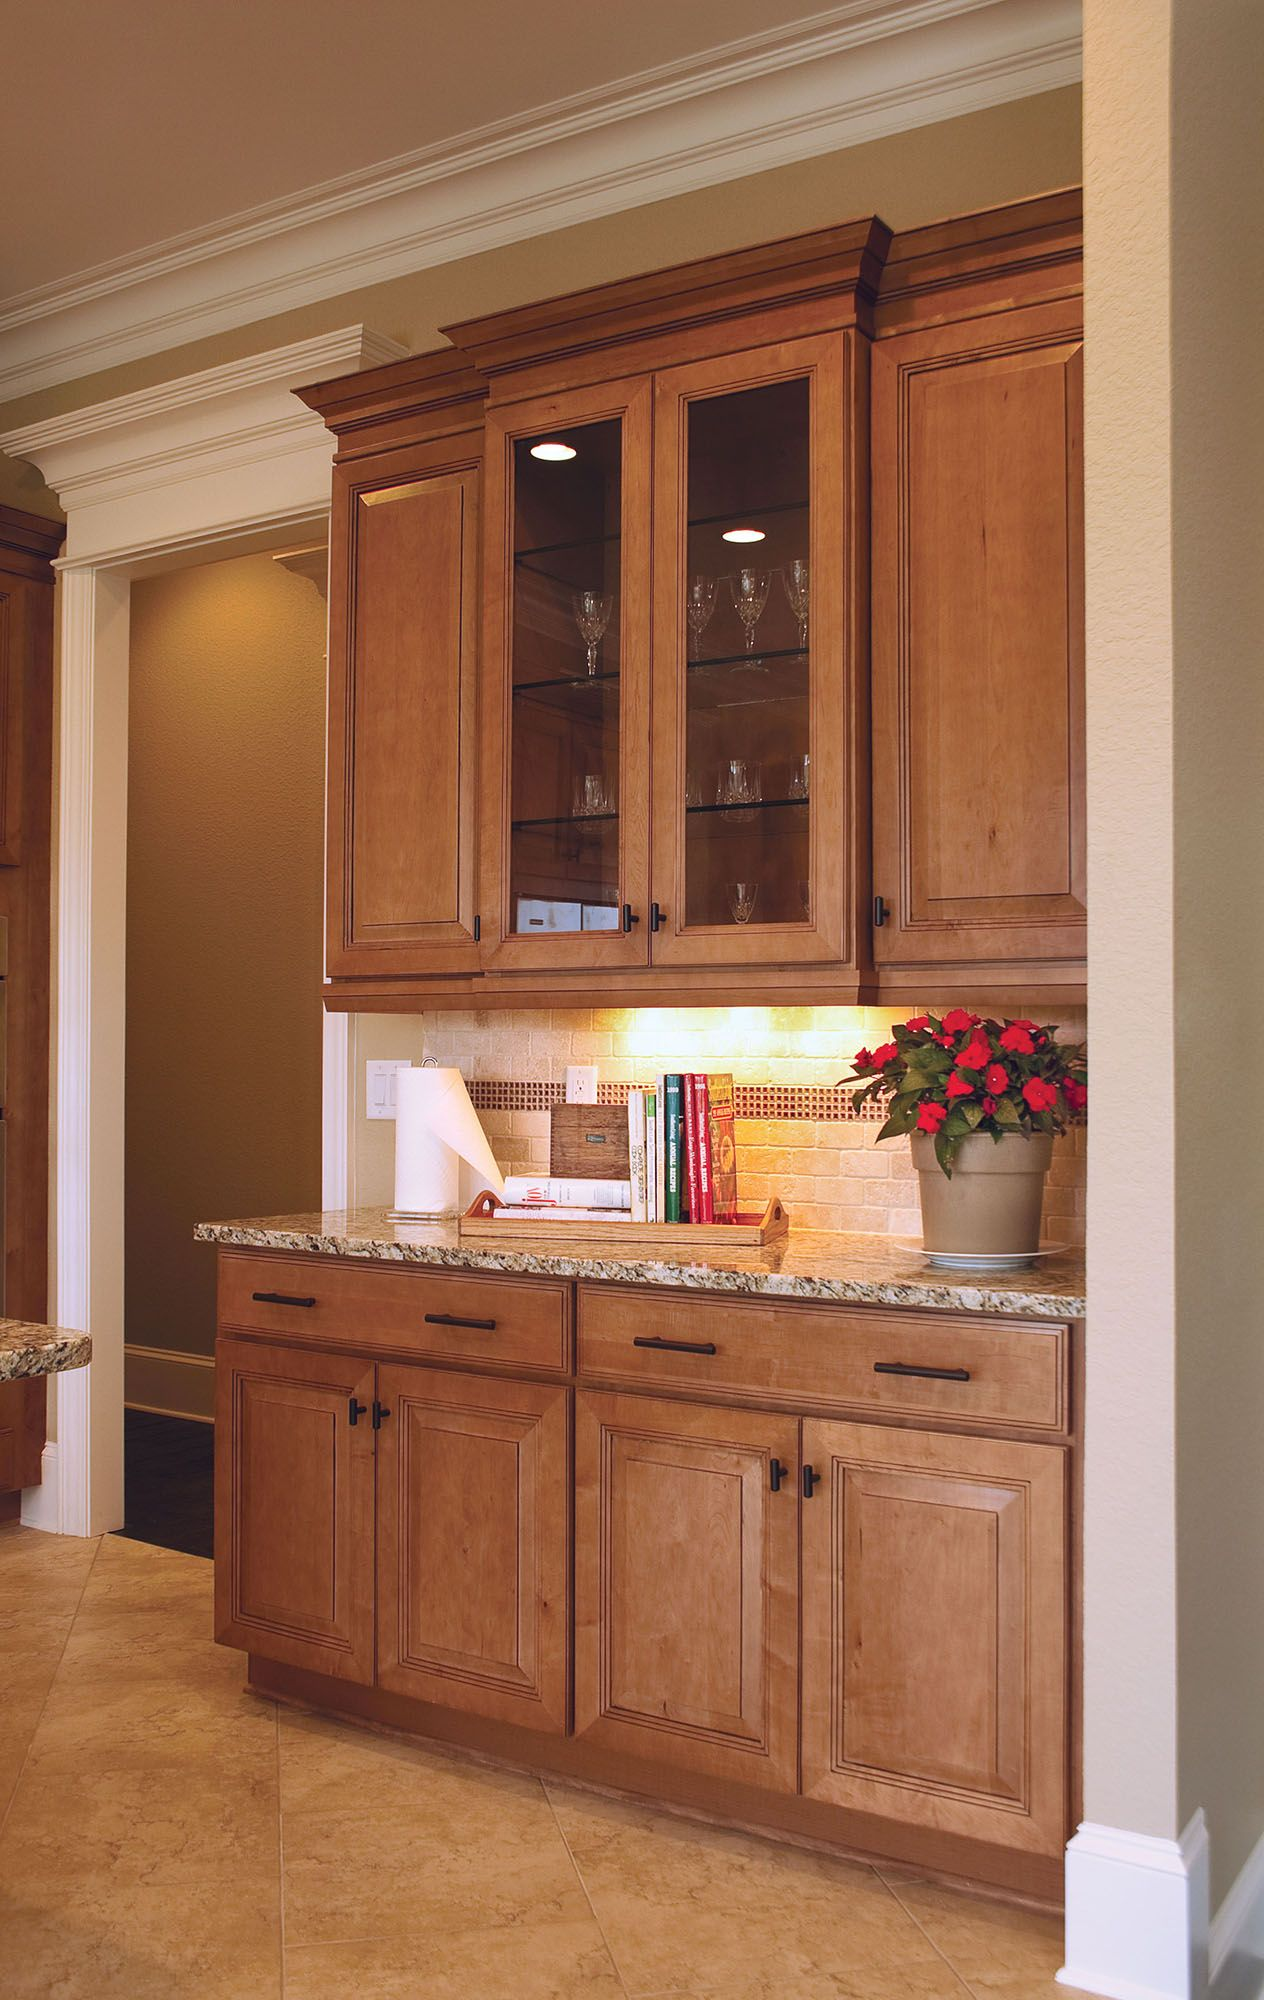 photo gallery of remodeled kitchen features cliqstudios carlton maple caramel jute luxury on kitchen cabinets with glass doors on top id=33902